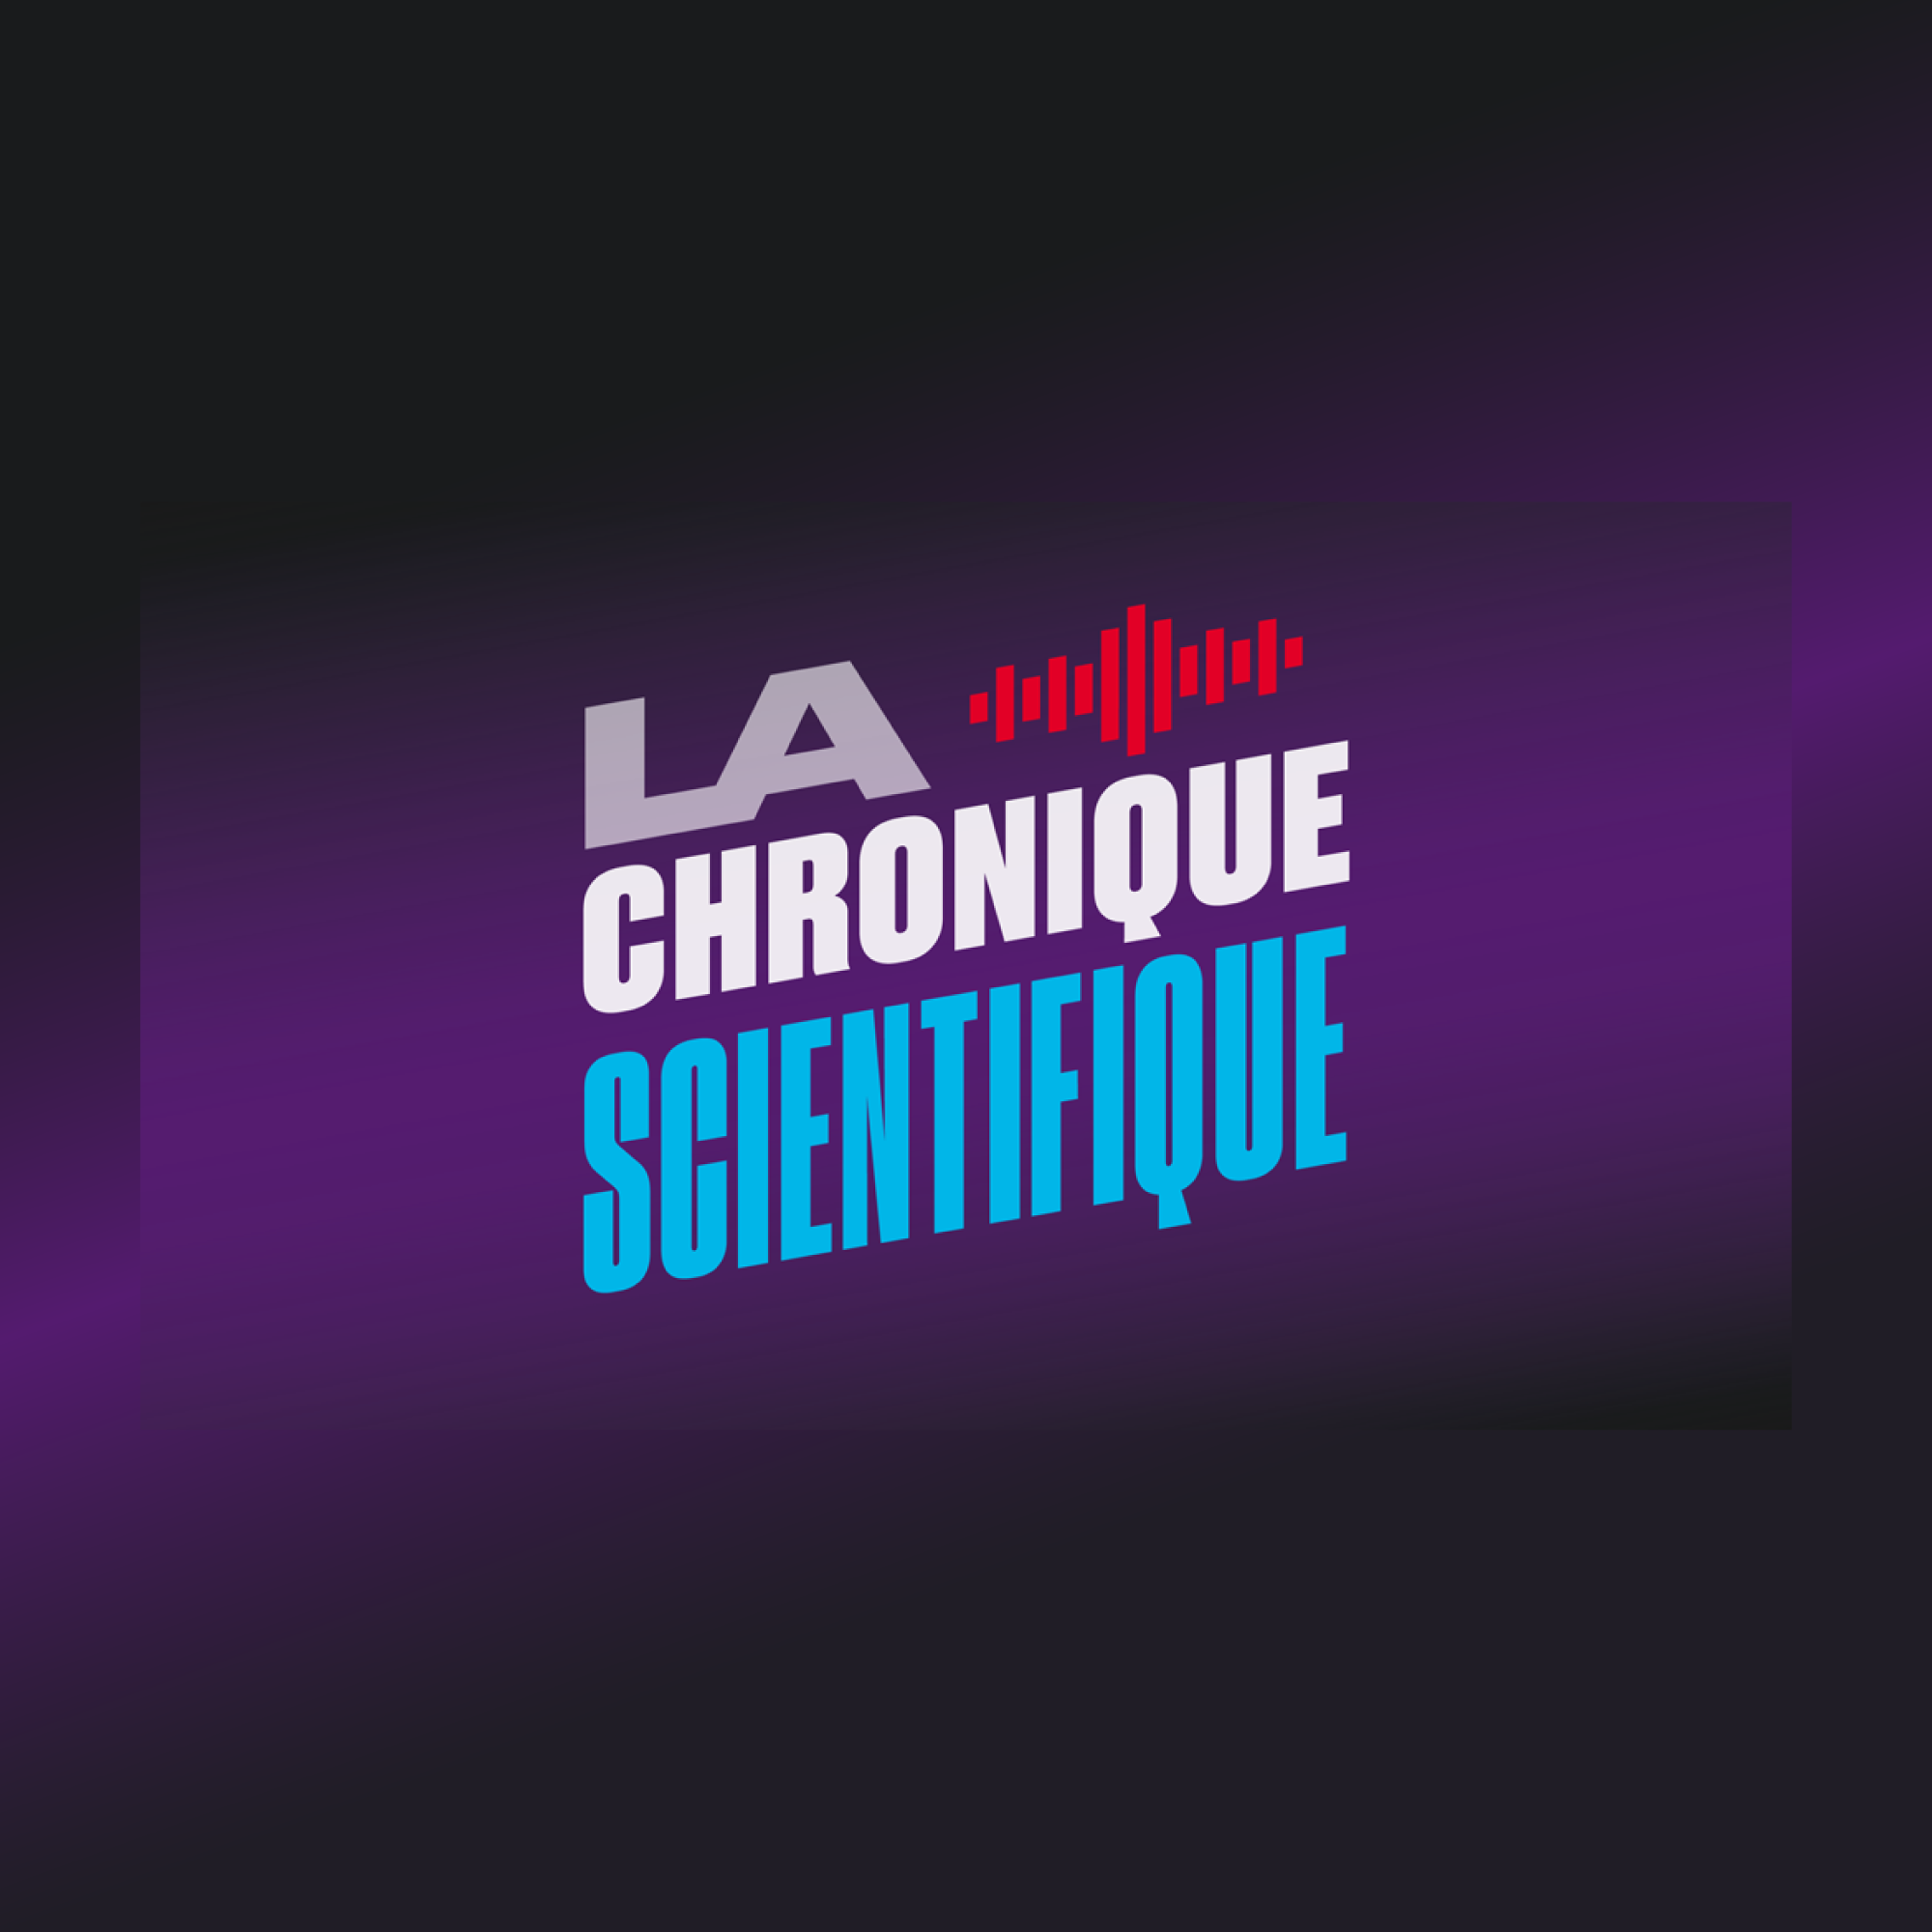 La chronique scientifique.